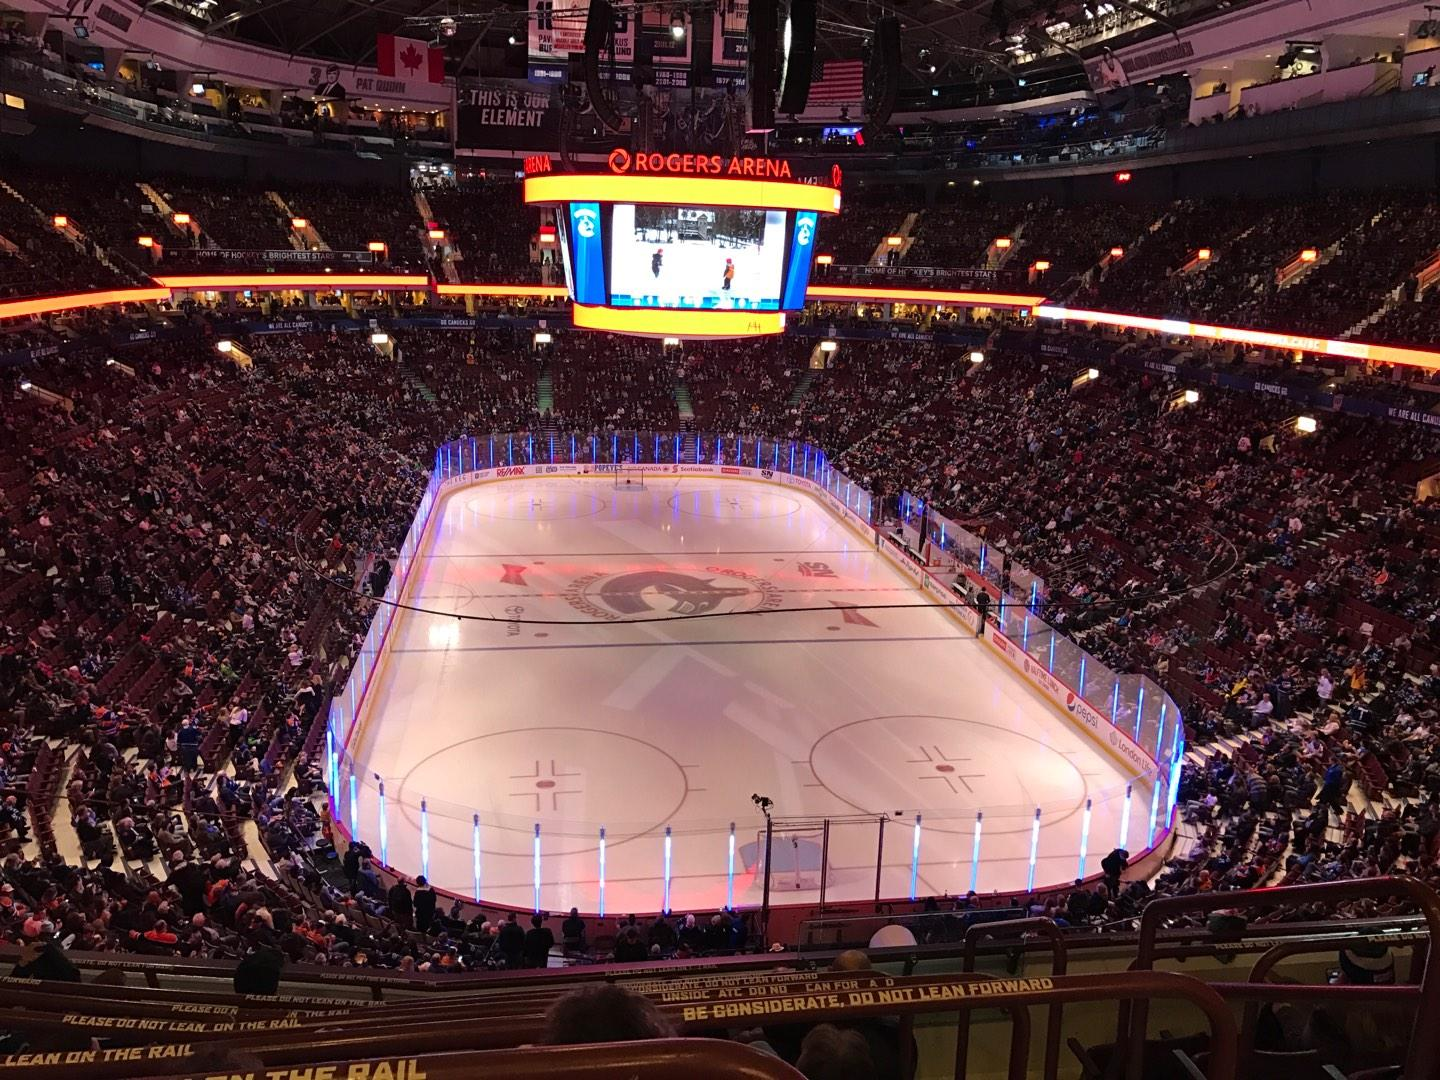 Rogers Arena Section 301 Row 7 Seat 101